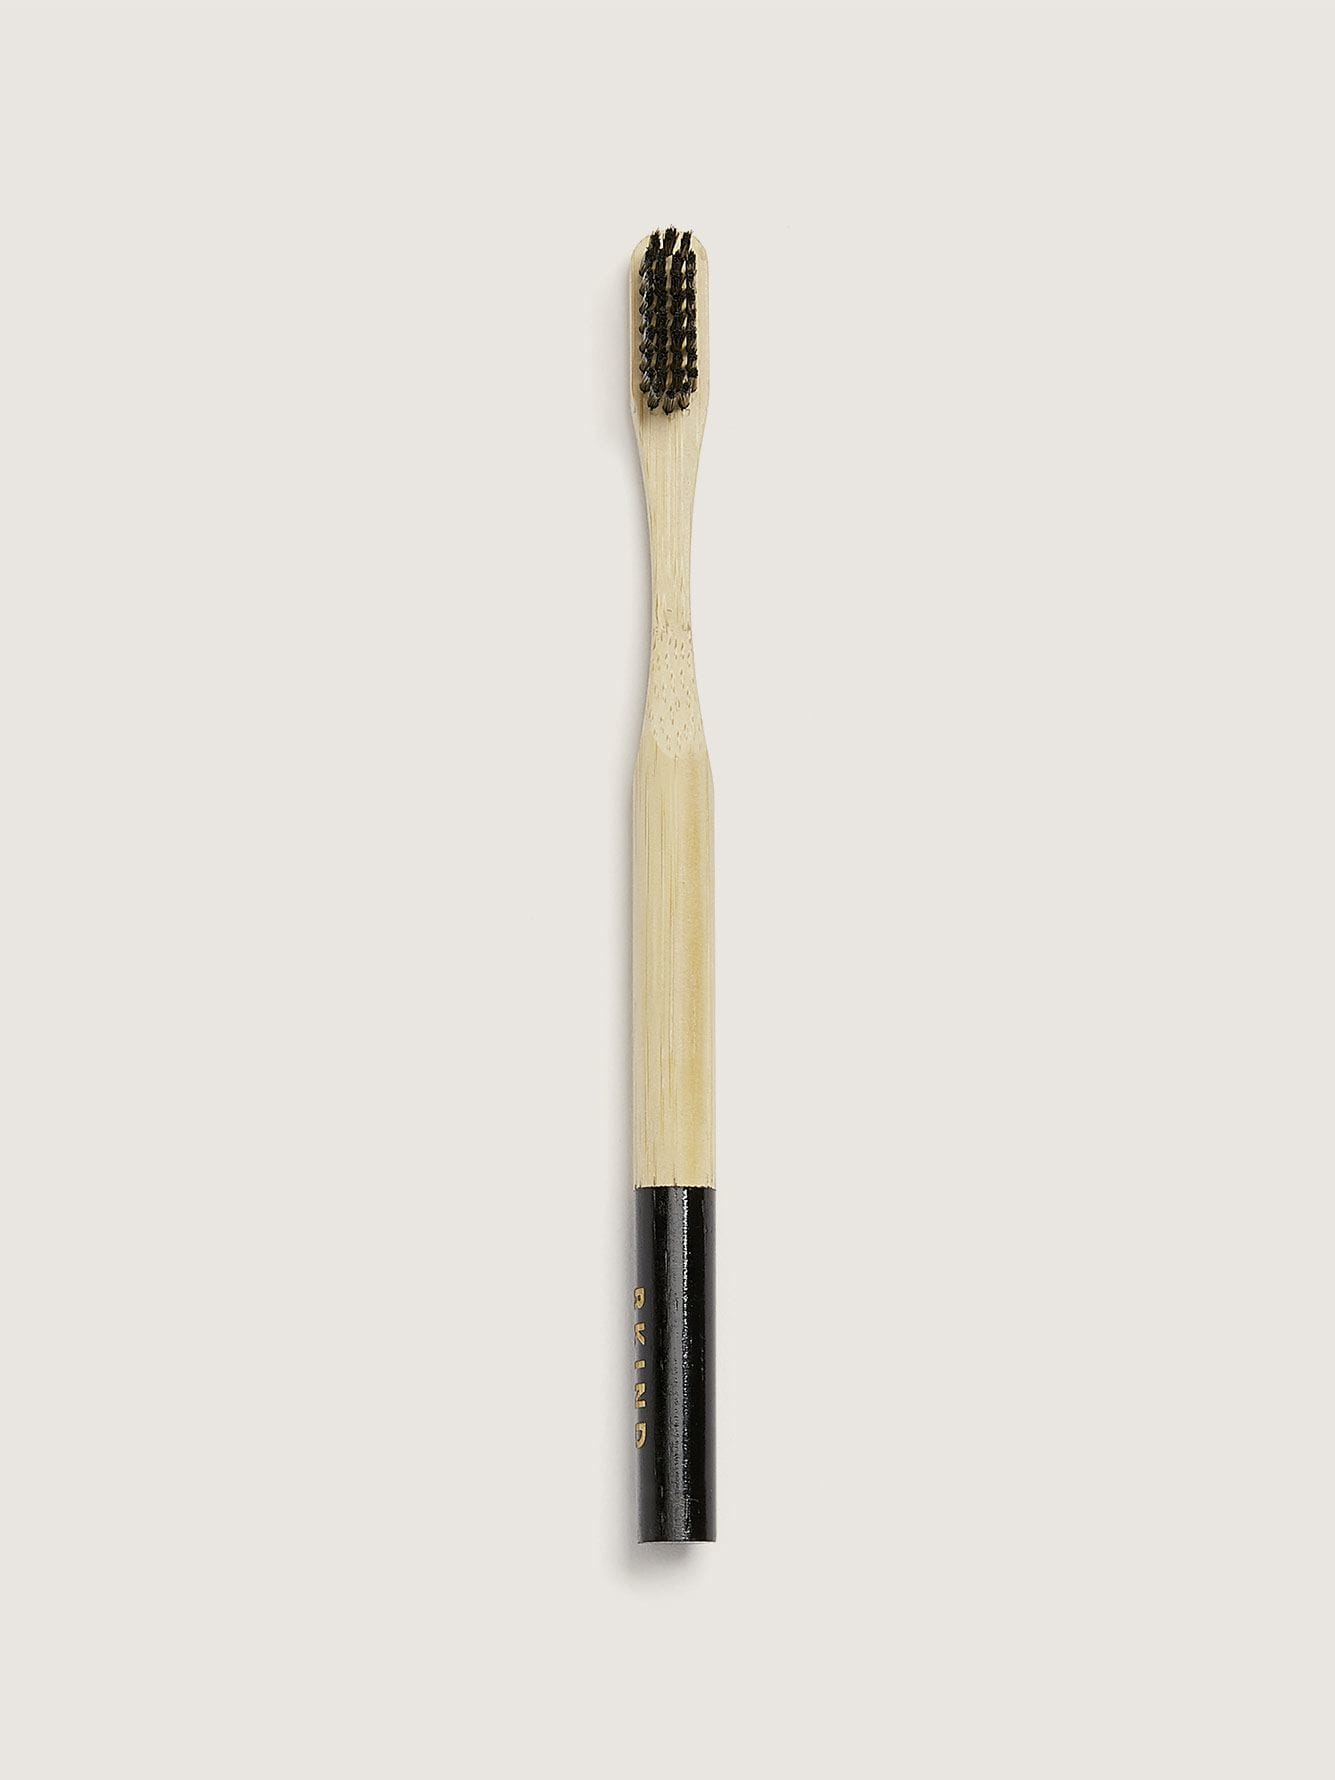 Biodegradable Toothbrush - BKIND